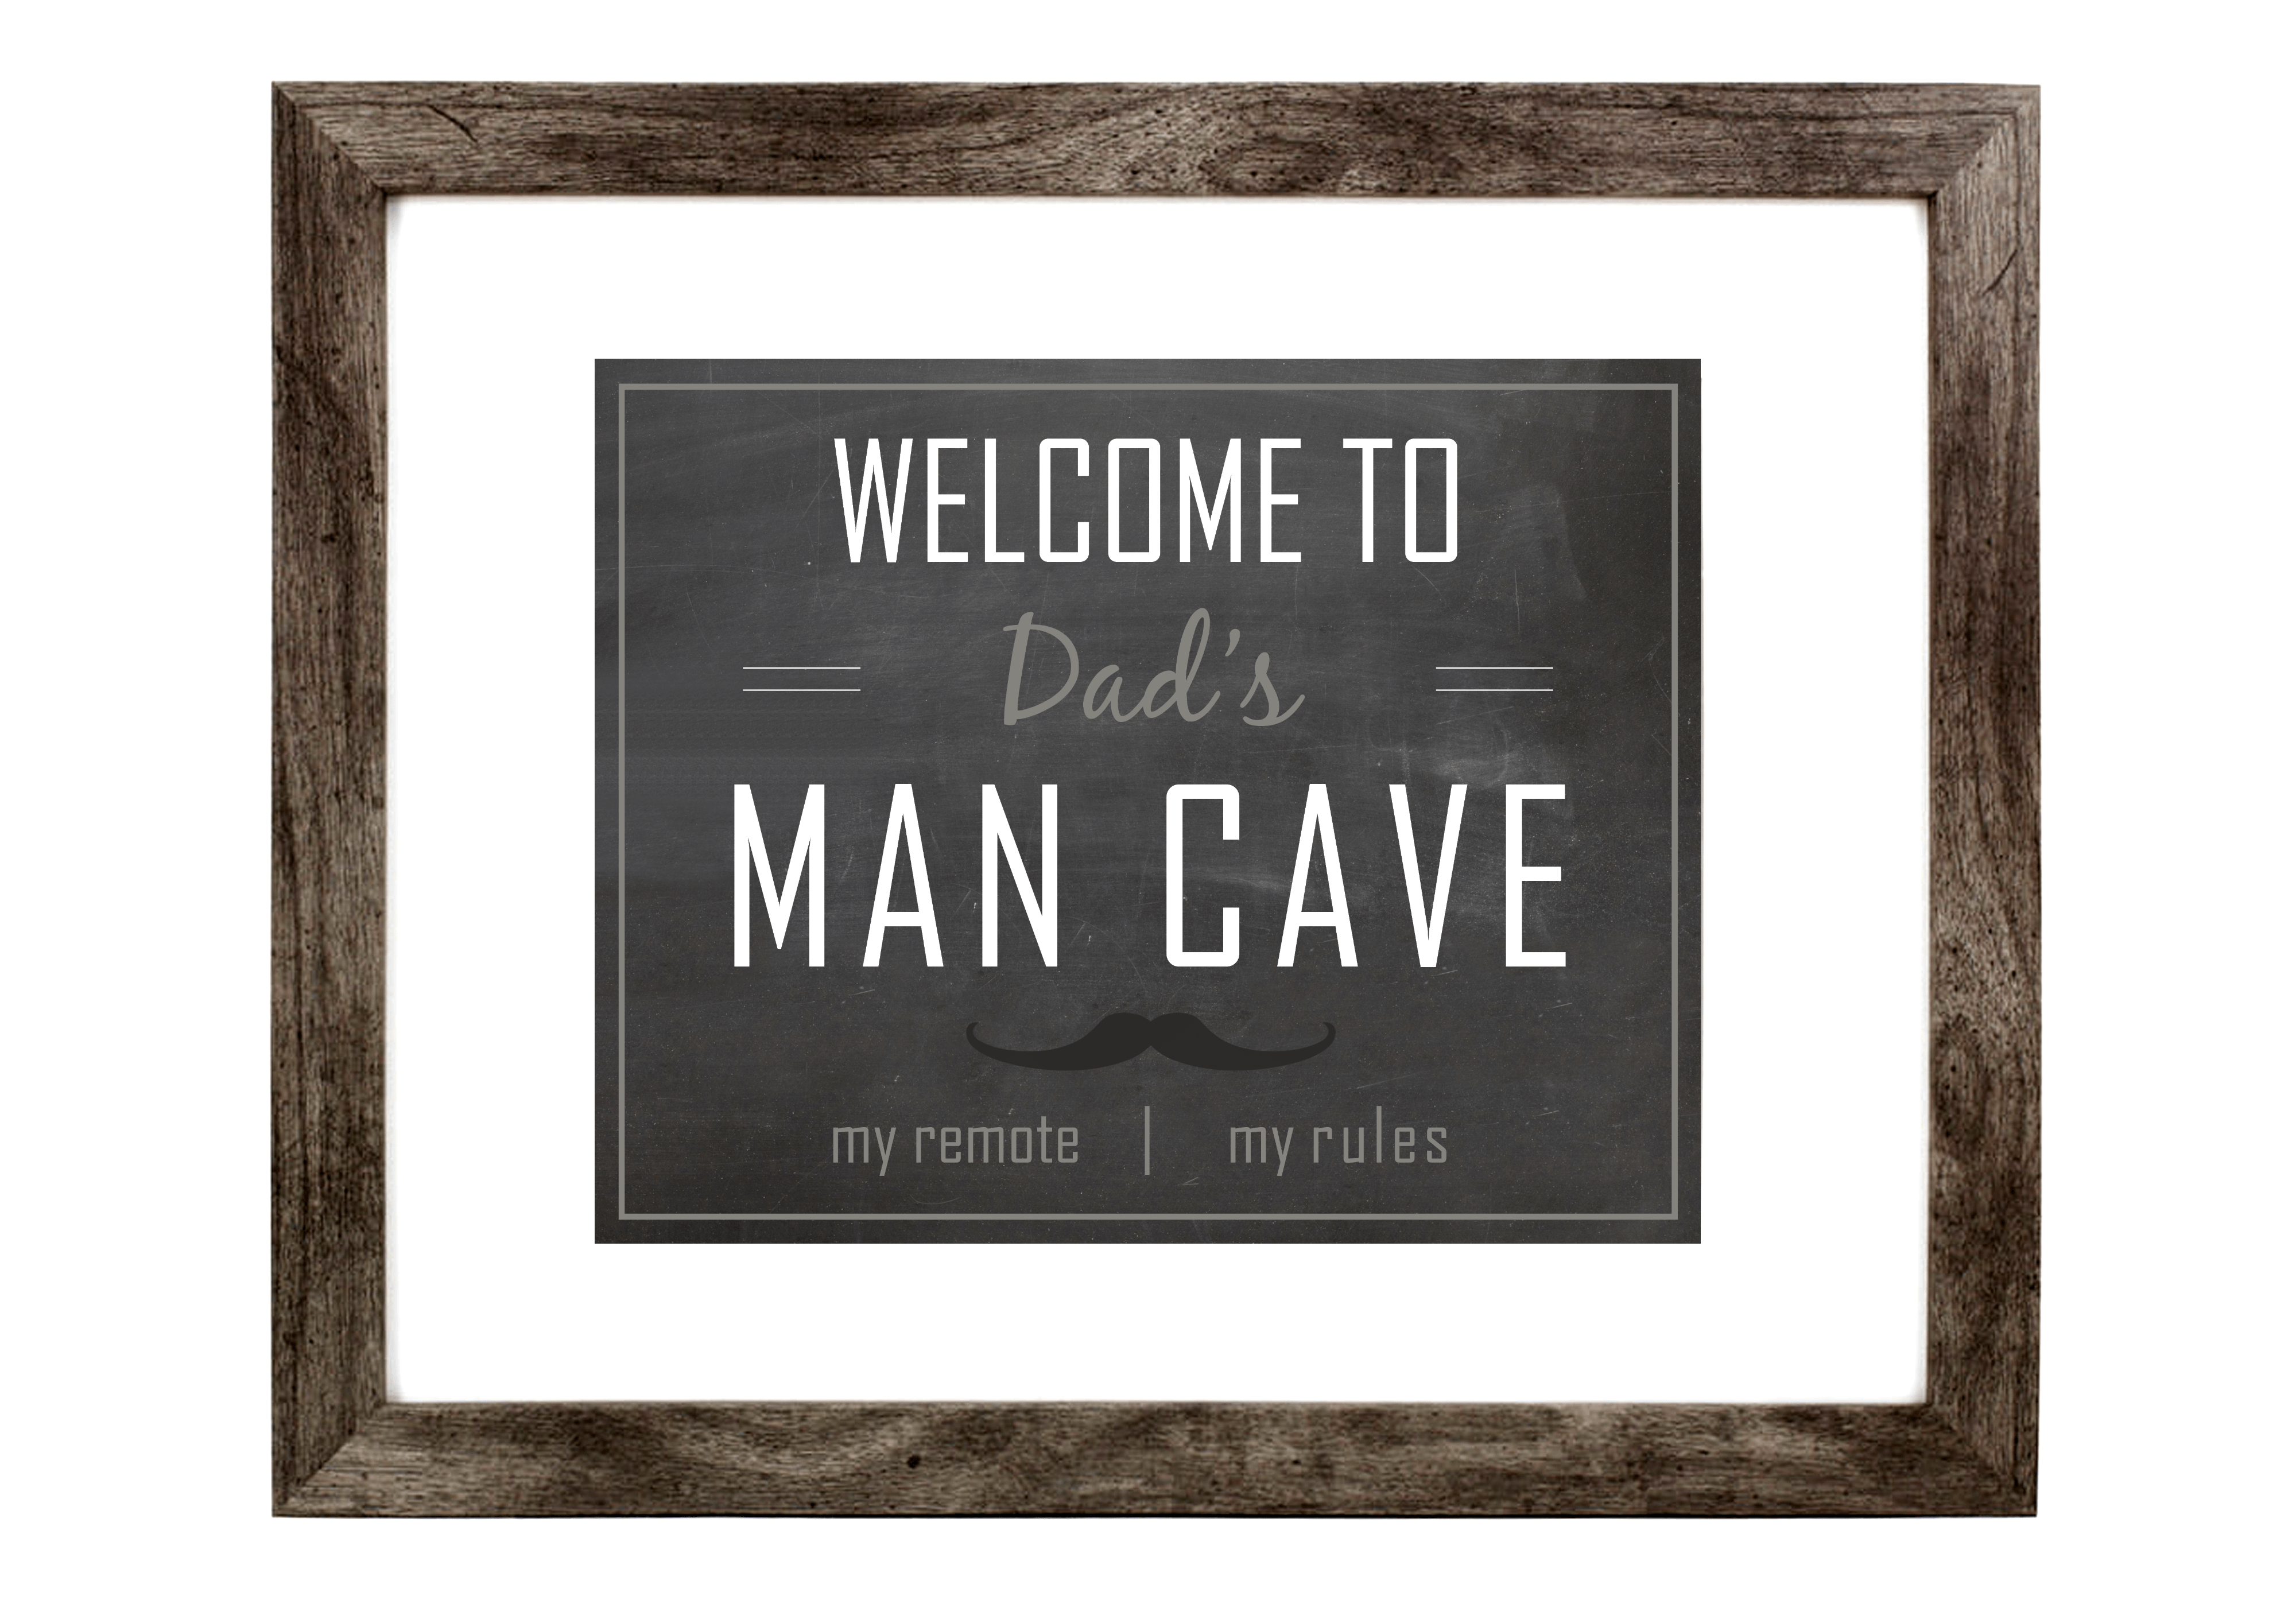 Man Cave Wall Art cool ideas for man caves • maison mass